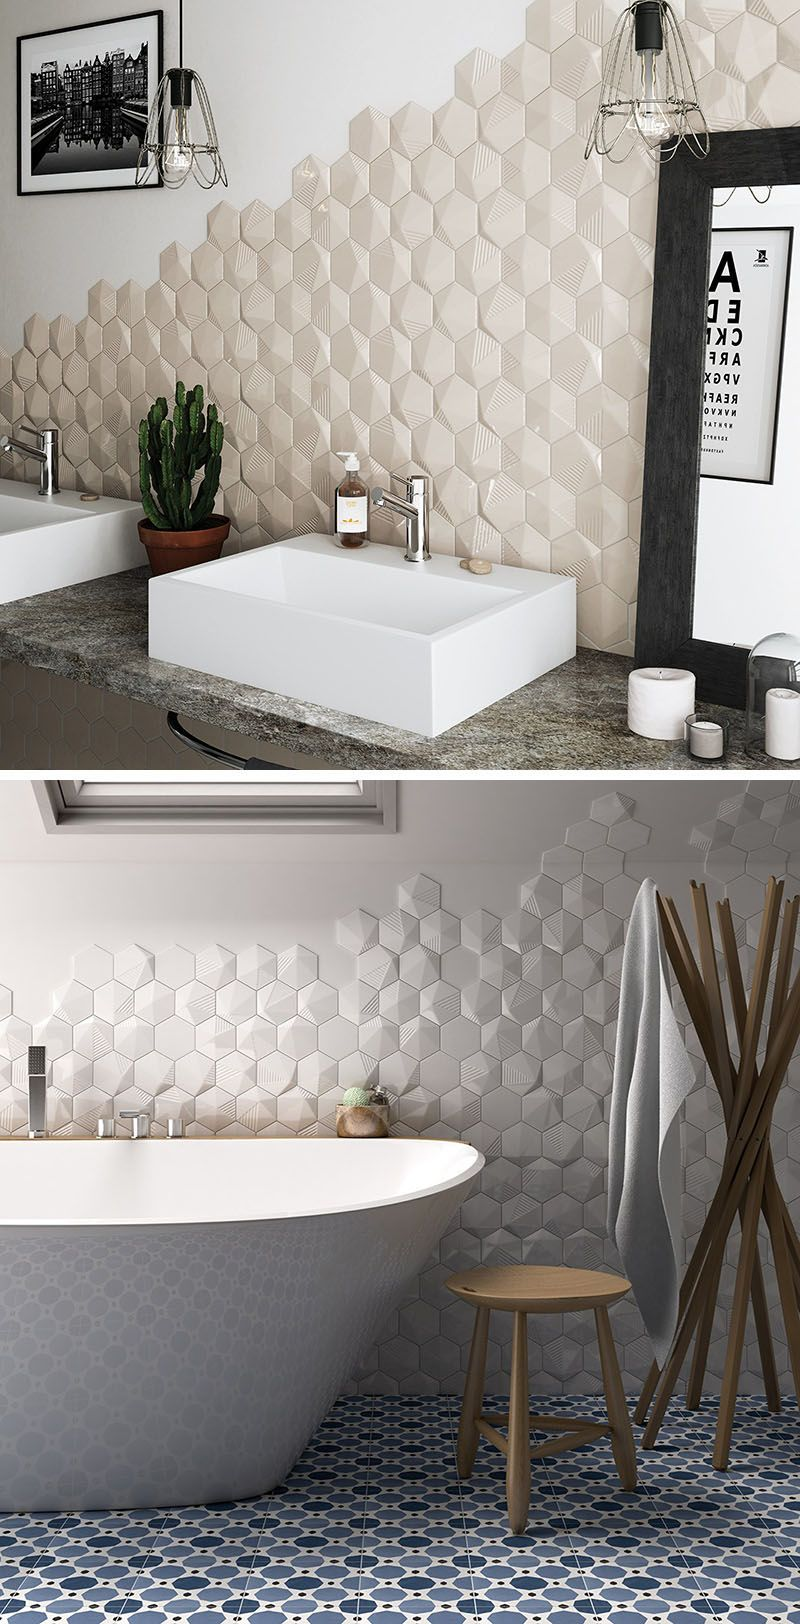 Bathroom Tile Idea Install 3d Tiles To Add Texture To Your Bathroom Tile Bathroom Best Bathroom Tiles Bathroom Inspiration